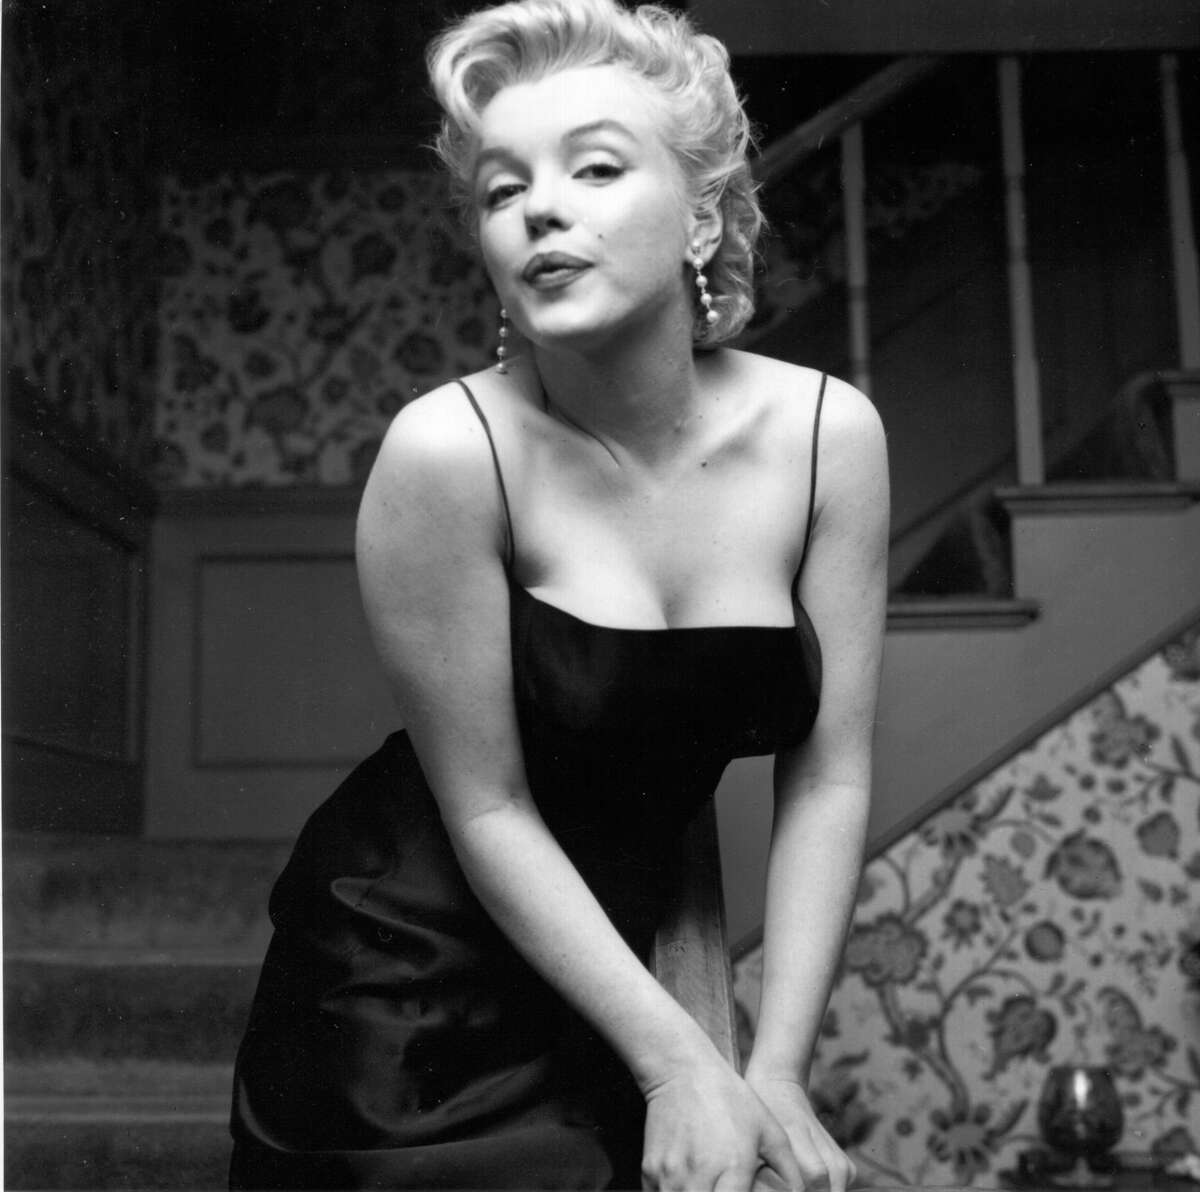 In 1956, Marilyn Monroe, now a full-blown movie star Marilyn Monroe posed for photographer Earl Leaf again, this time during a party at her own home in Los Angeles.